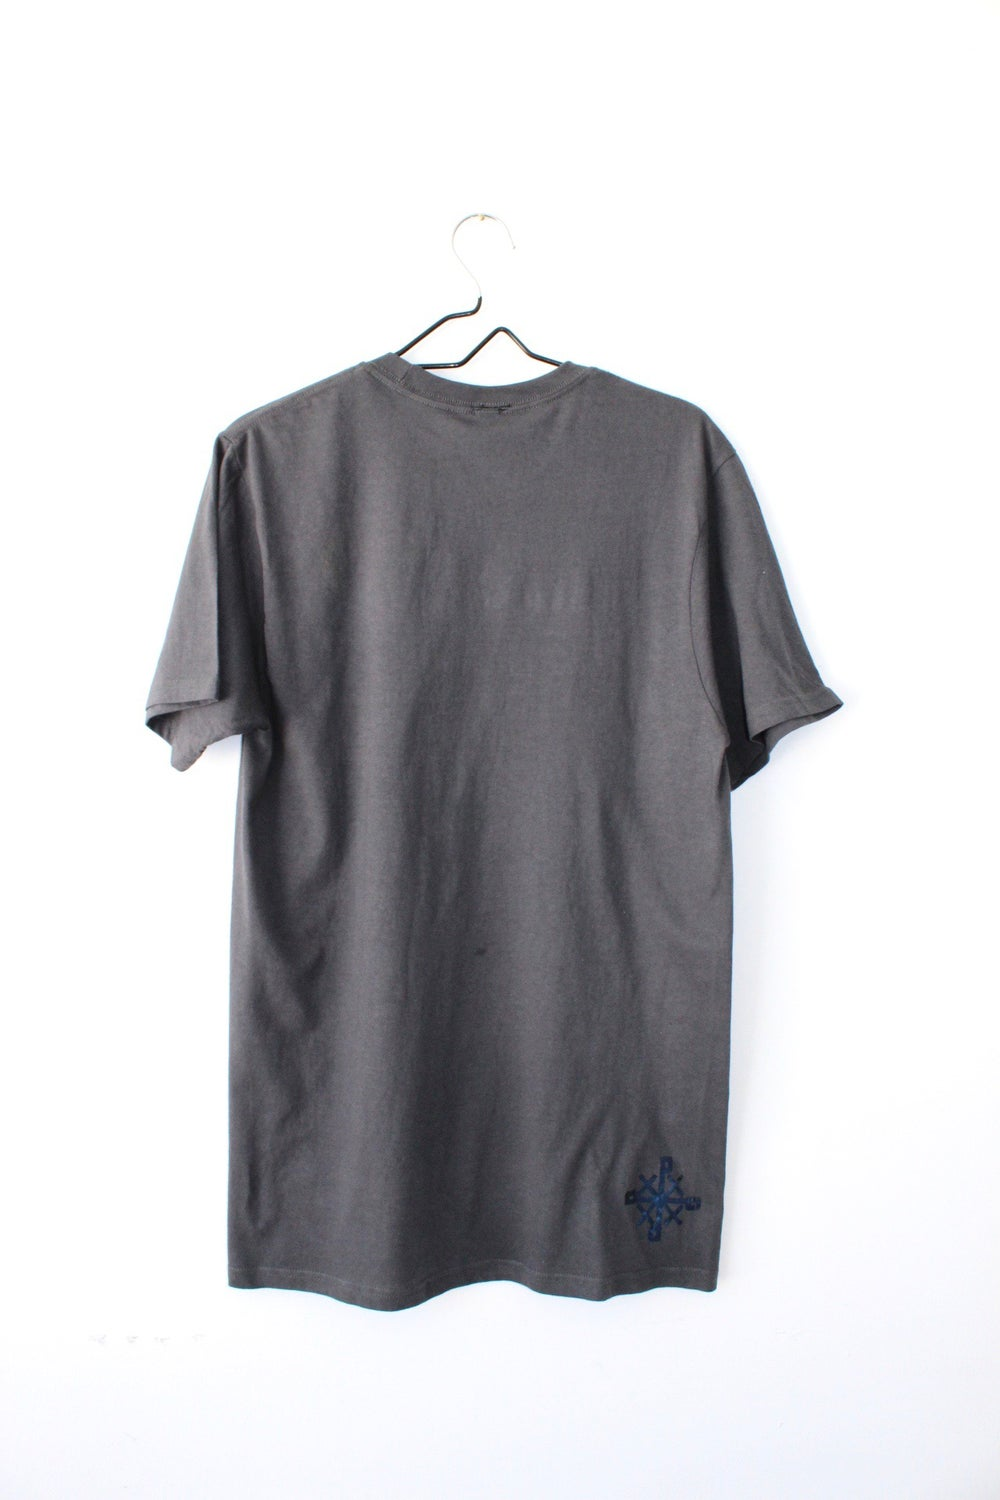 stacked right tee in dark gray